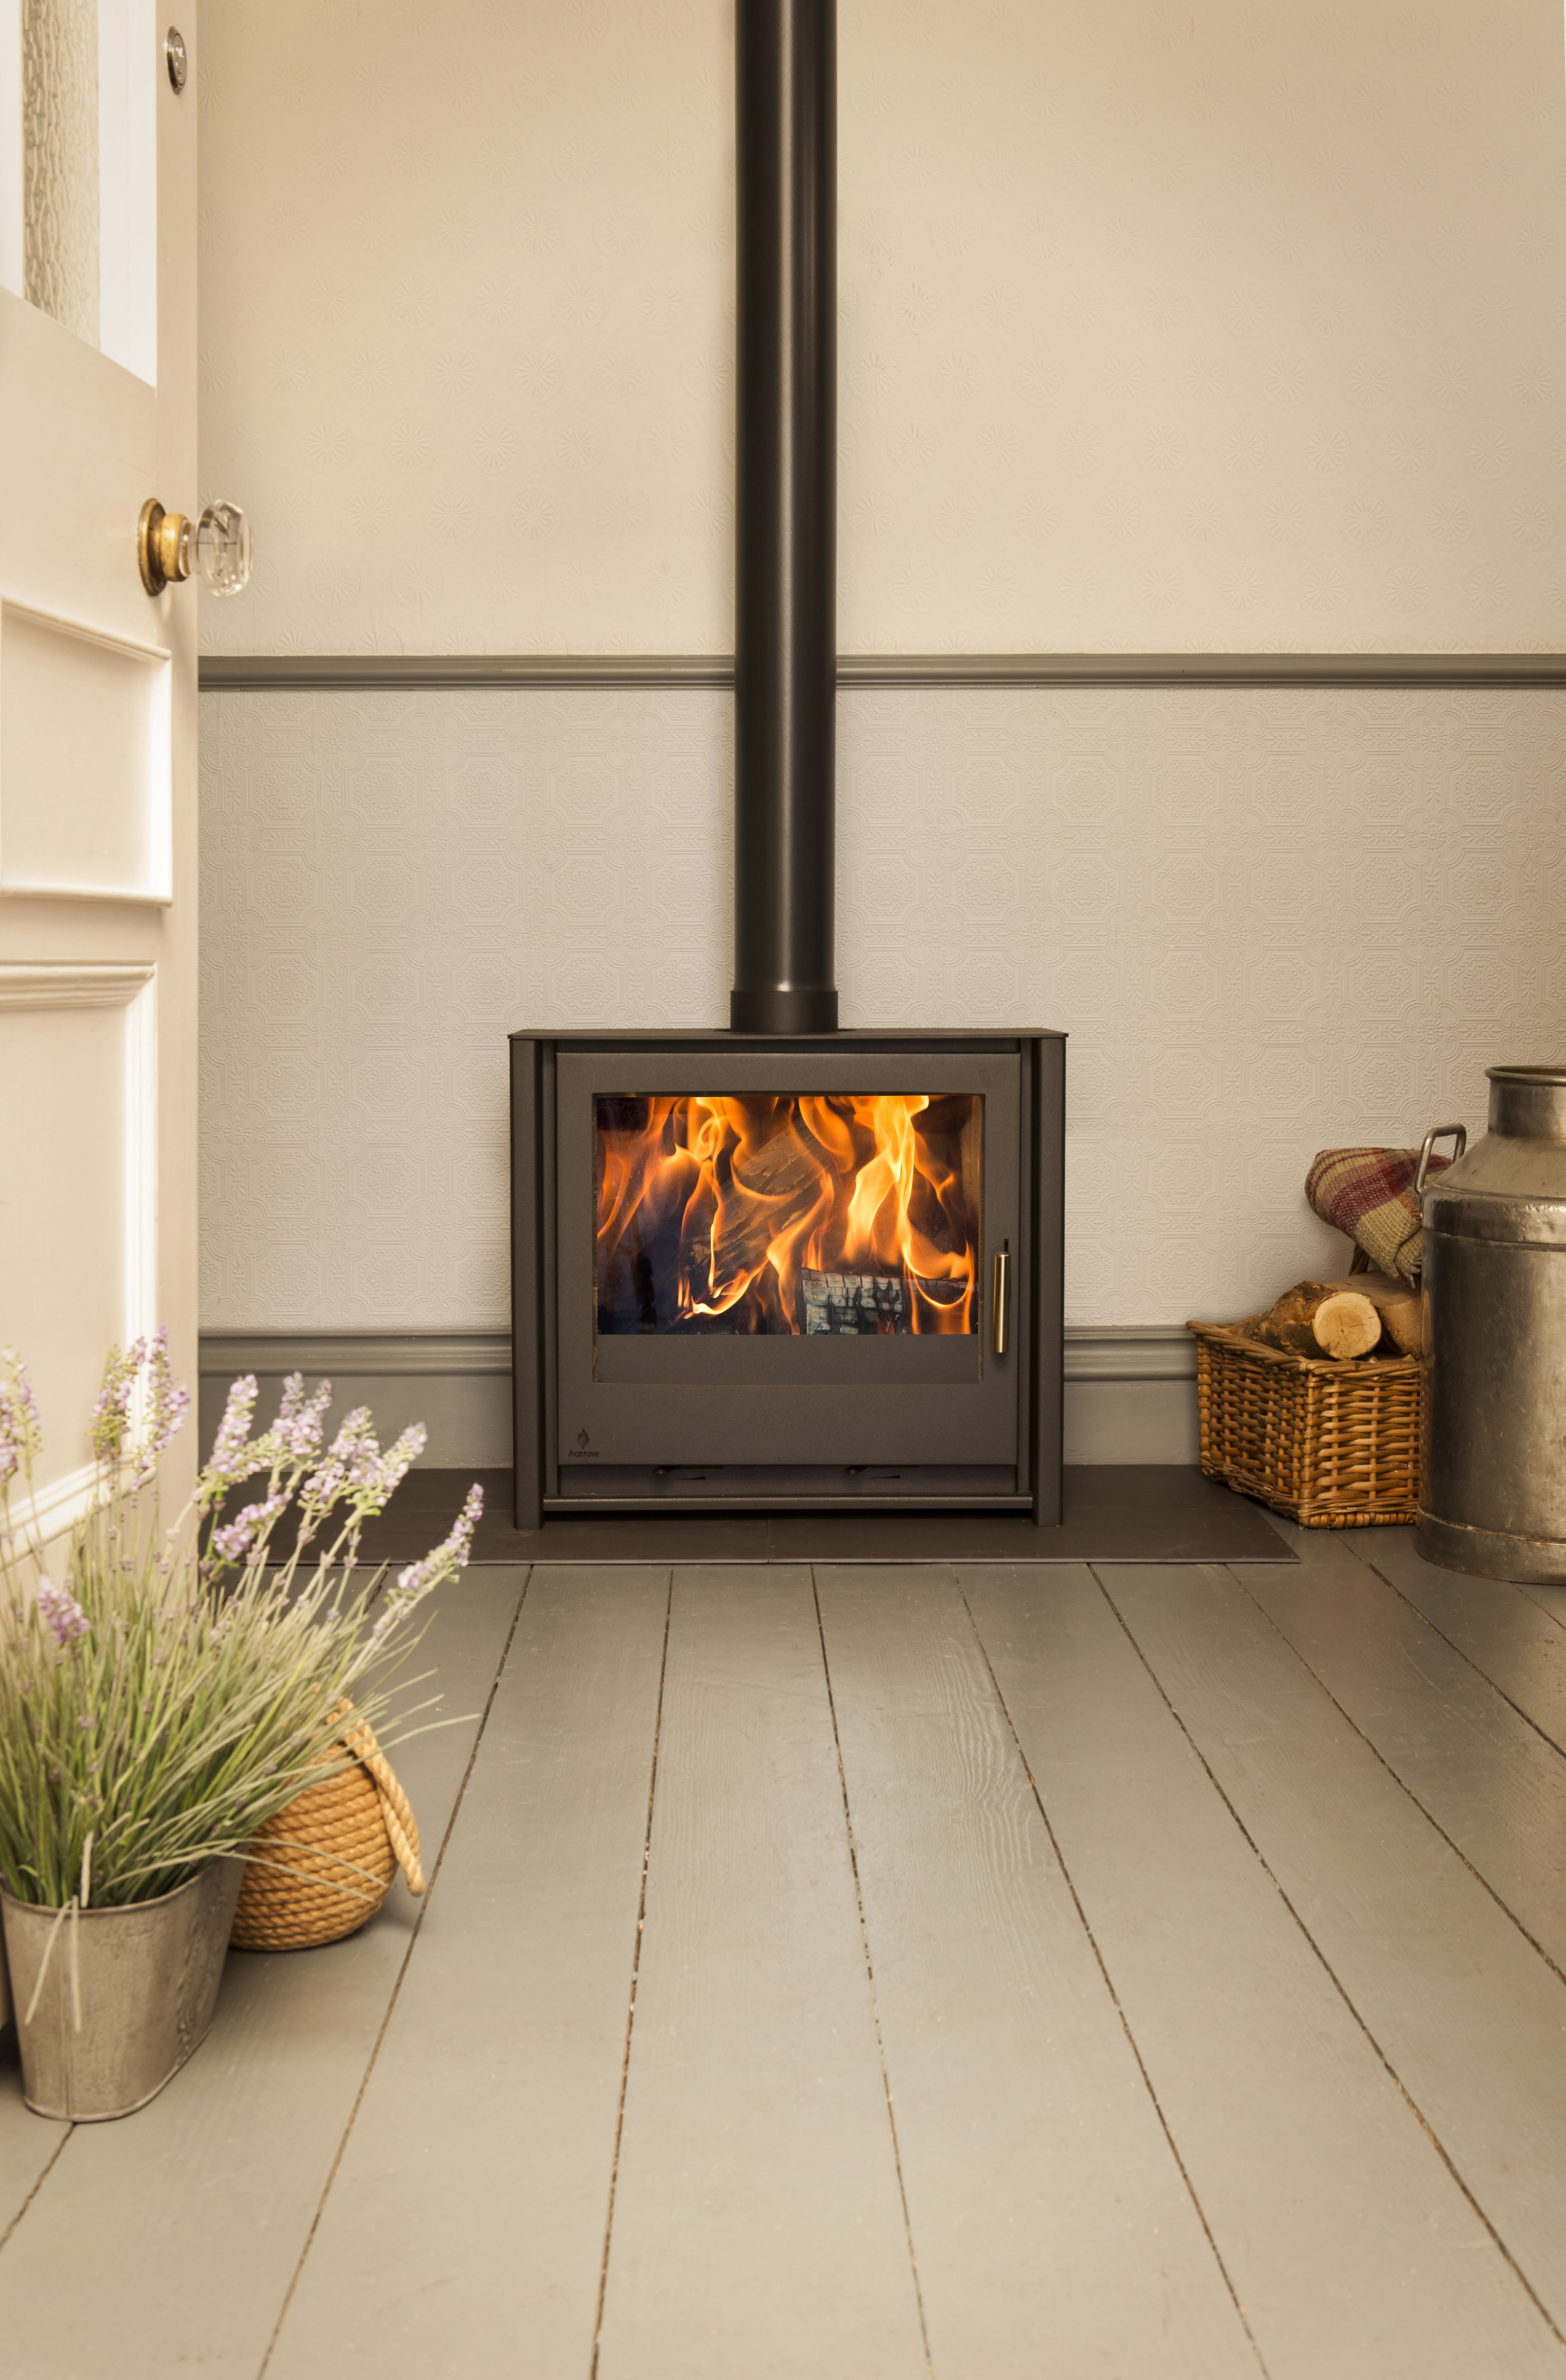 Aarrow I600f Slimline This Is A Contemporary Freestanding Wood Burning Stove This Model Is Similar In Output To The I400 Bu Wood Burner Multi Fuel Stove Stove